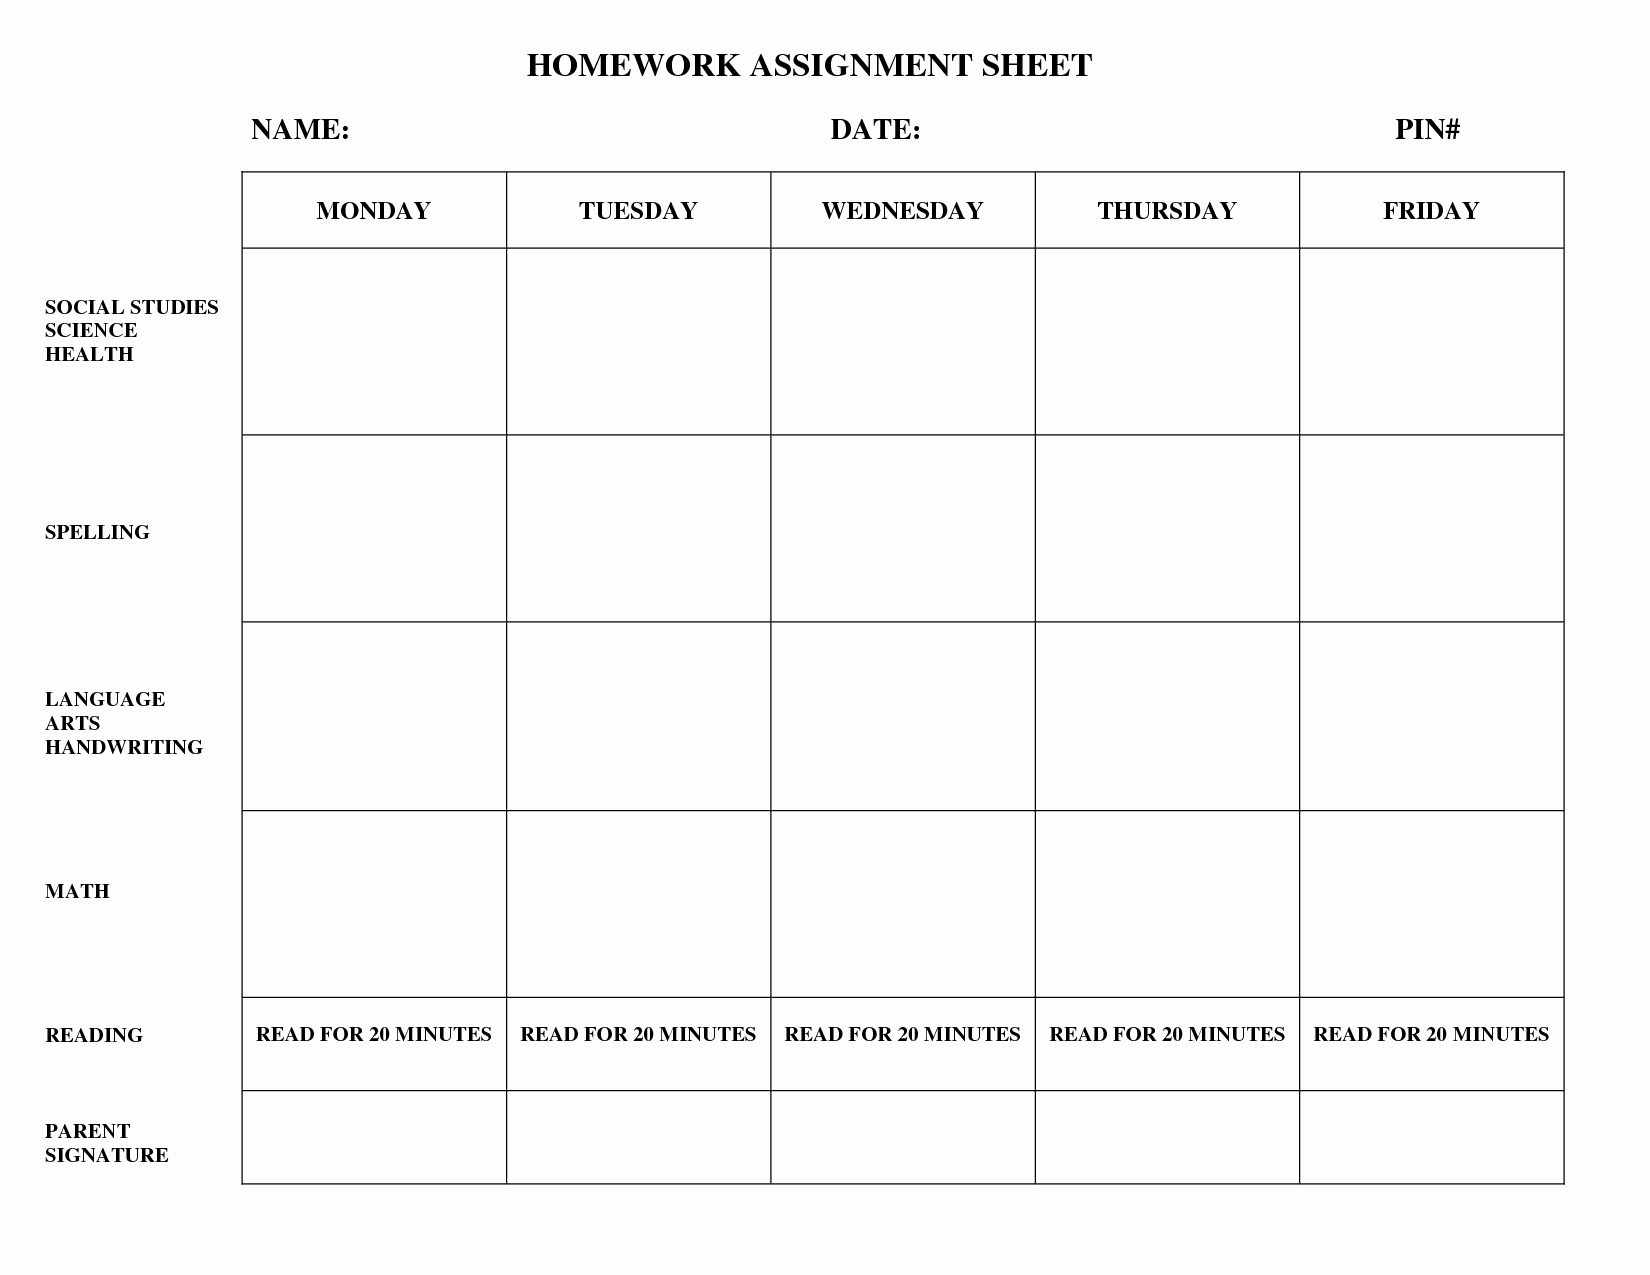 Weekly Homework assignment Sheet Template Lovely 15 Best Of Free Homework Worksheets Printable